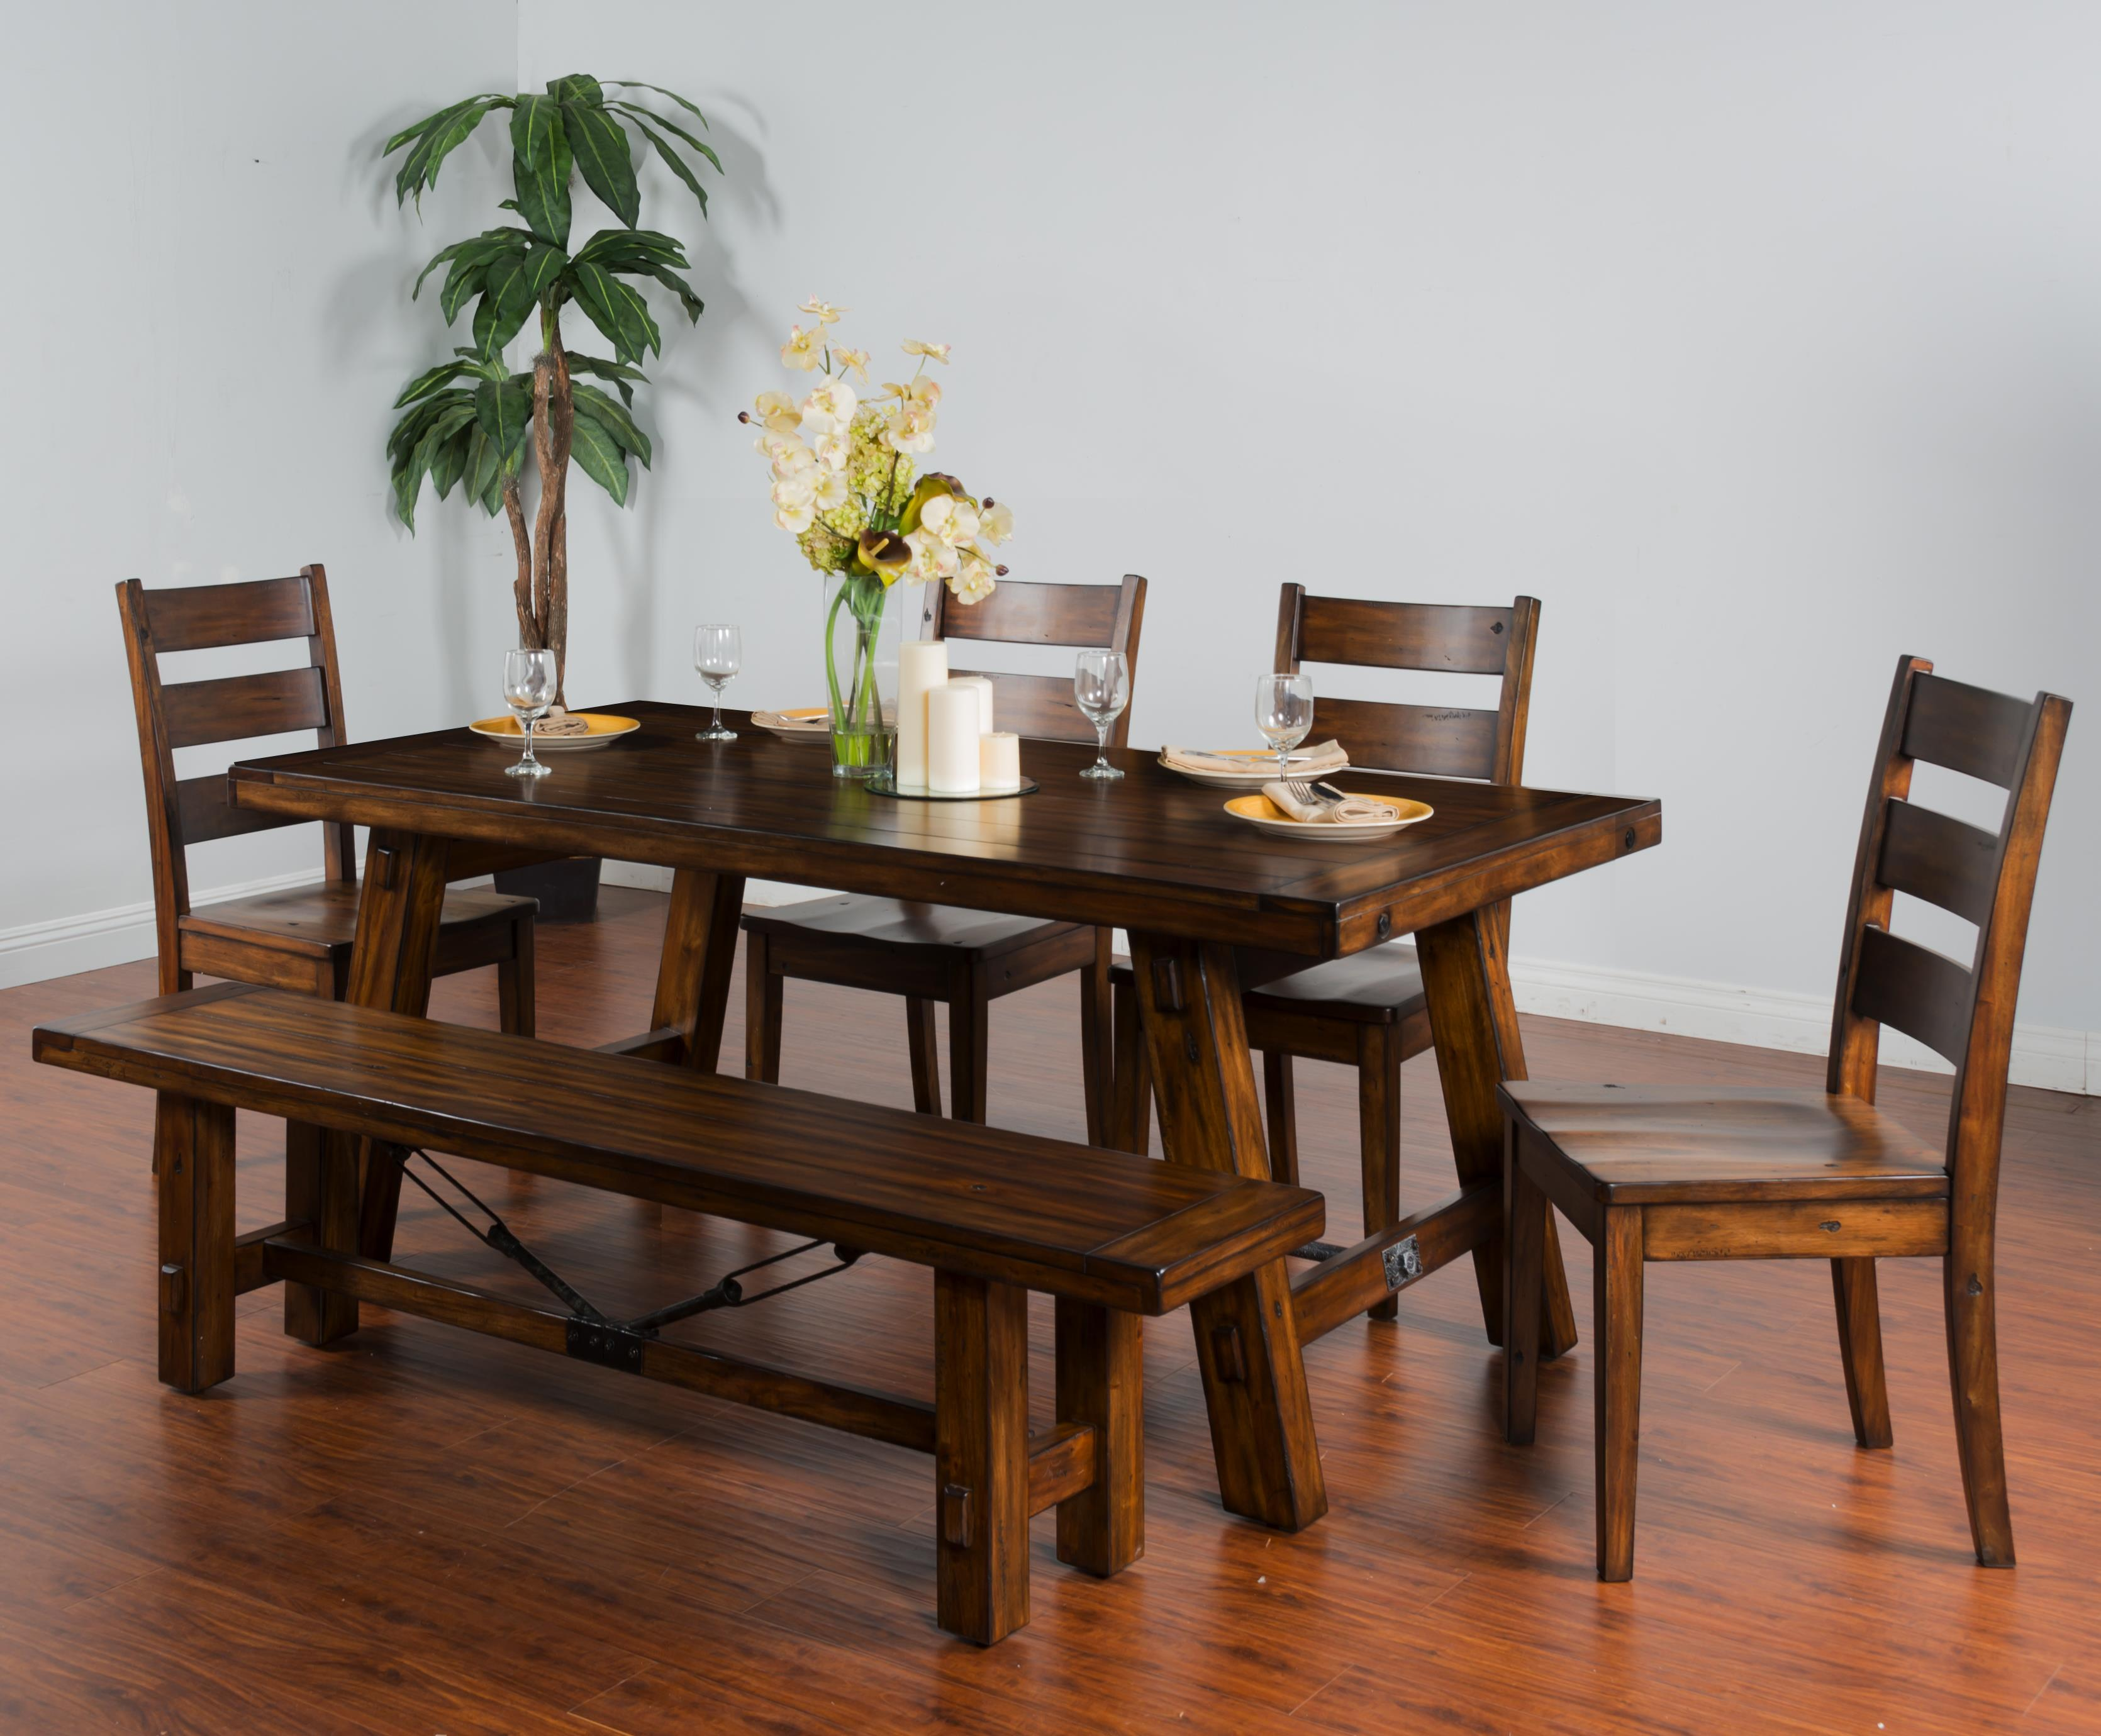 Tuscany 6-Piece Extension Table Set with Bench by Sunny Designs at Sparks HomeStore